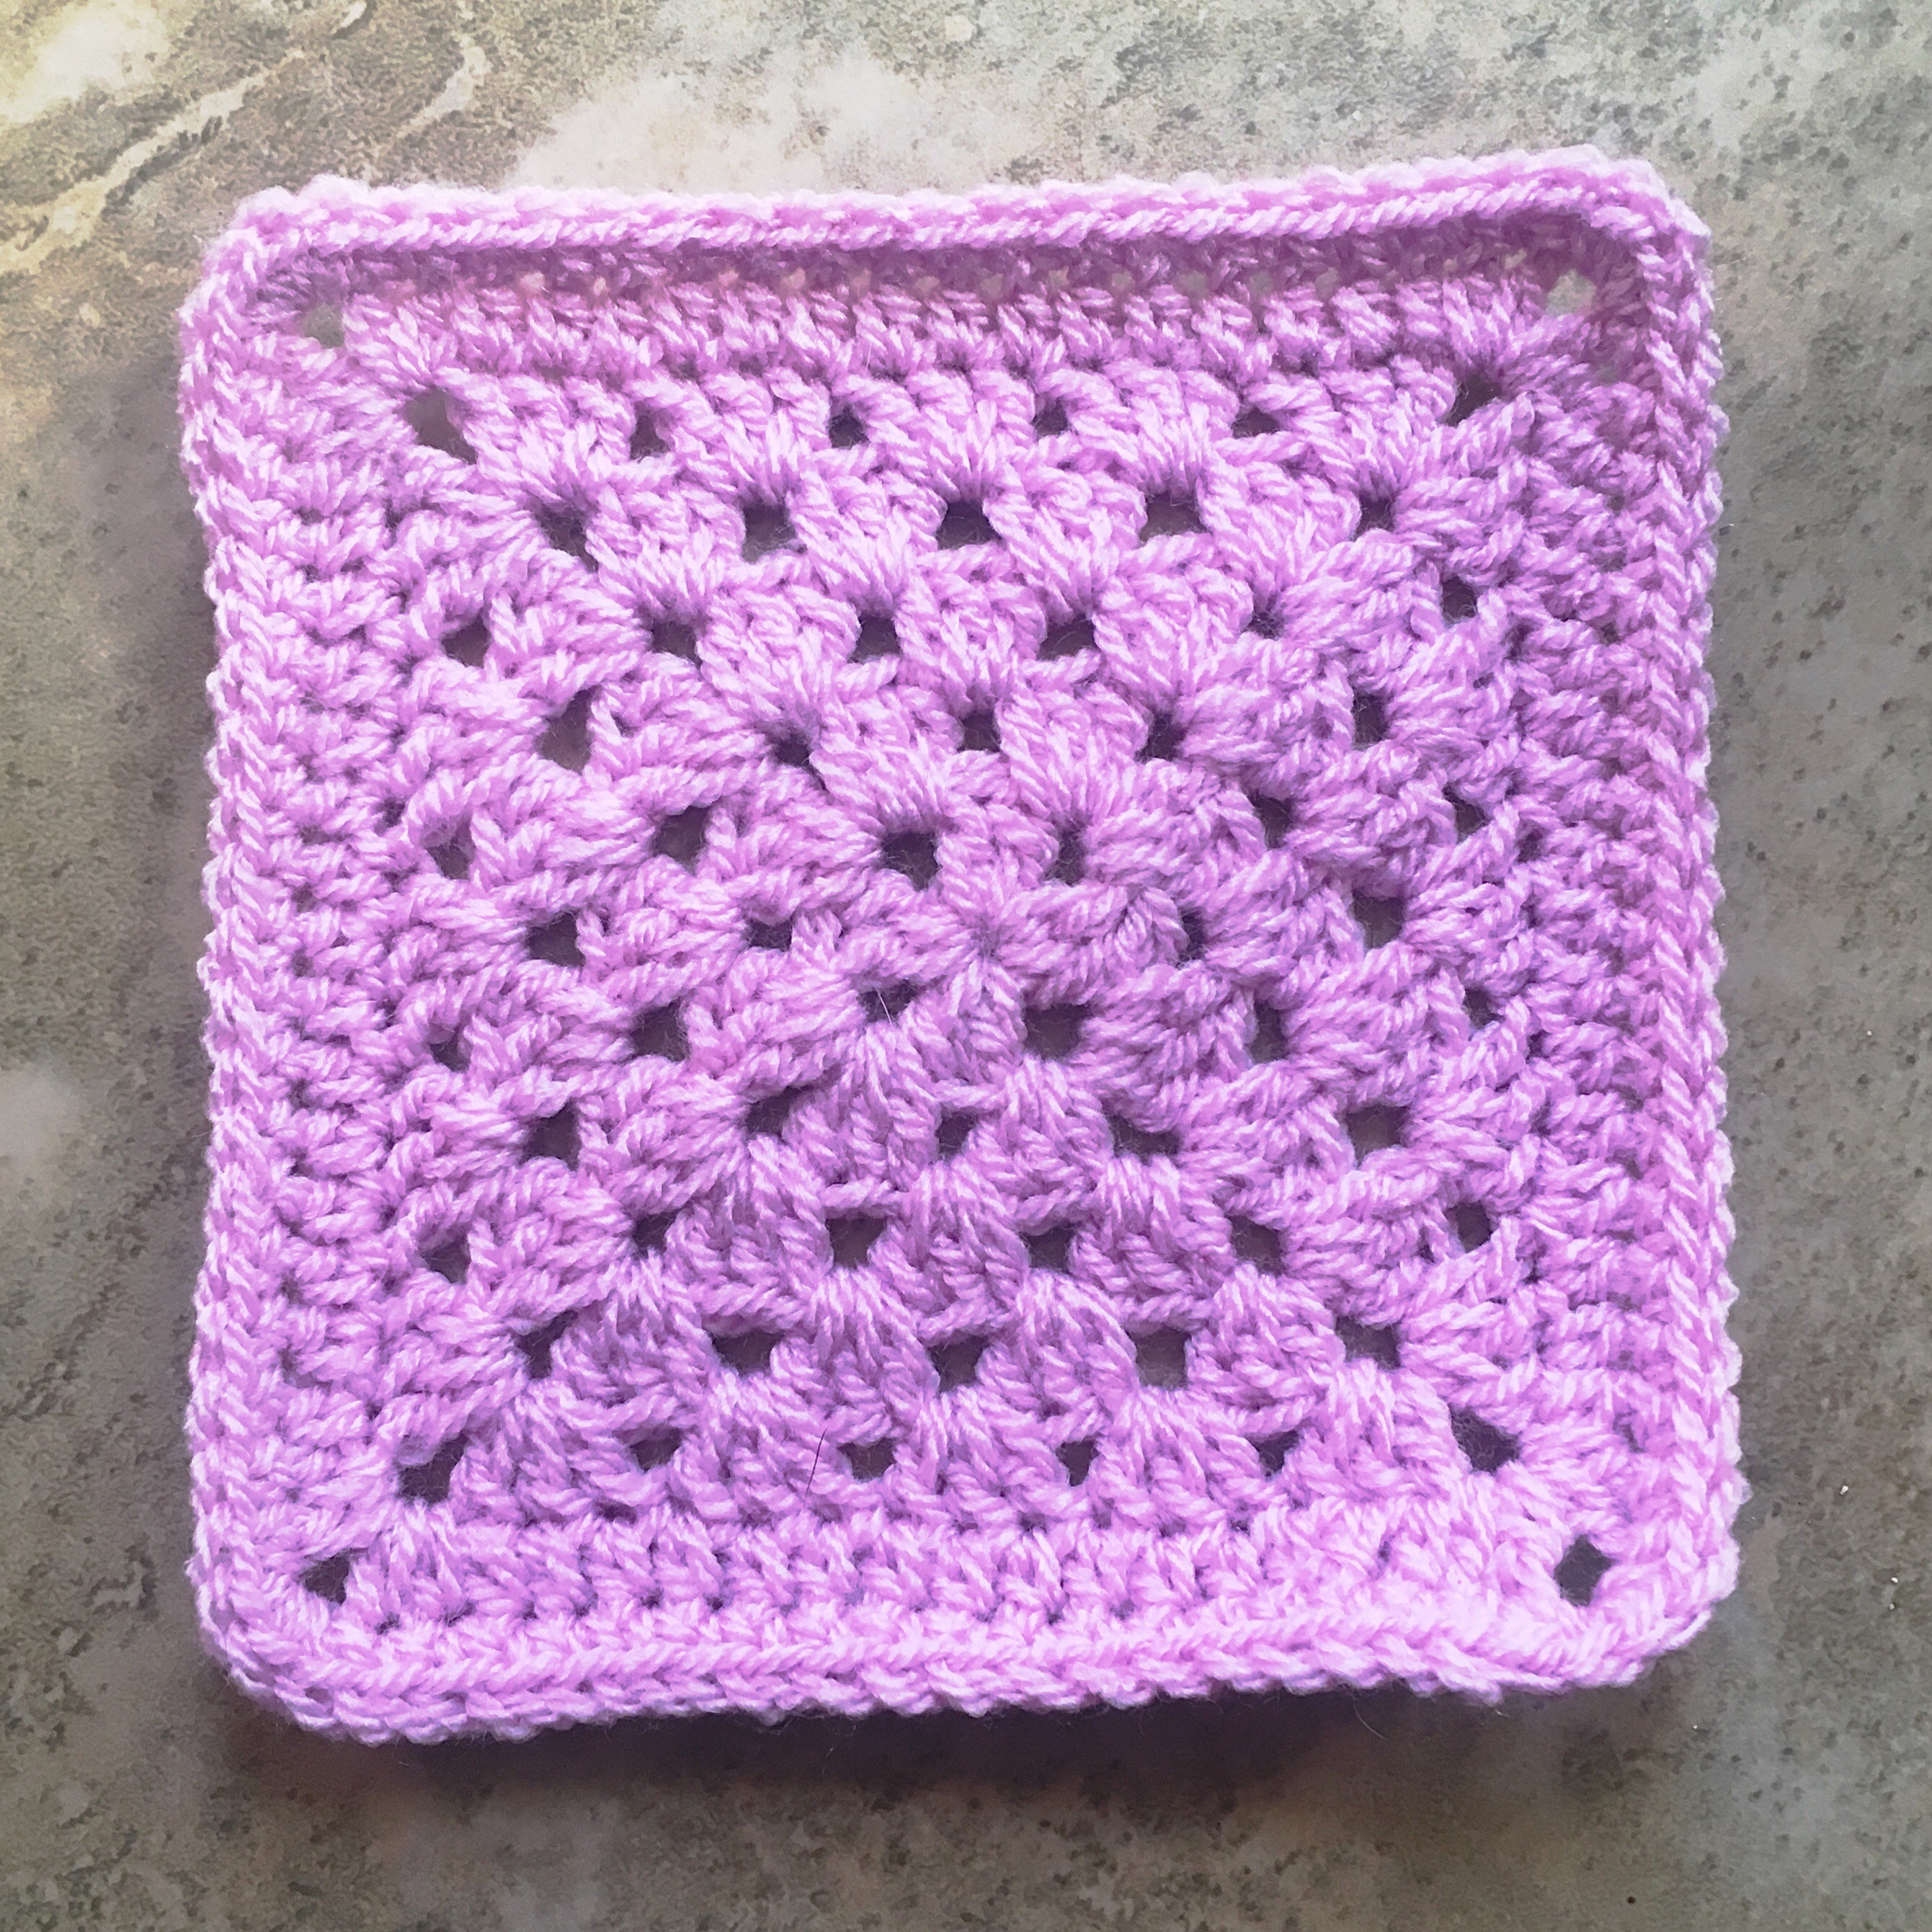 Free Granny Square Patterns Elegant Plain Granny Square – Cypress Textiles Of Incredible 49 Pictures Free Granny Square Patterns